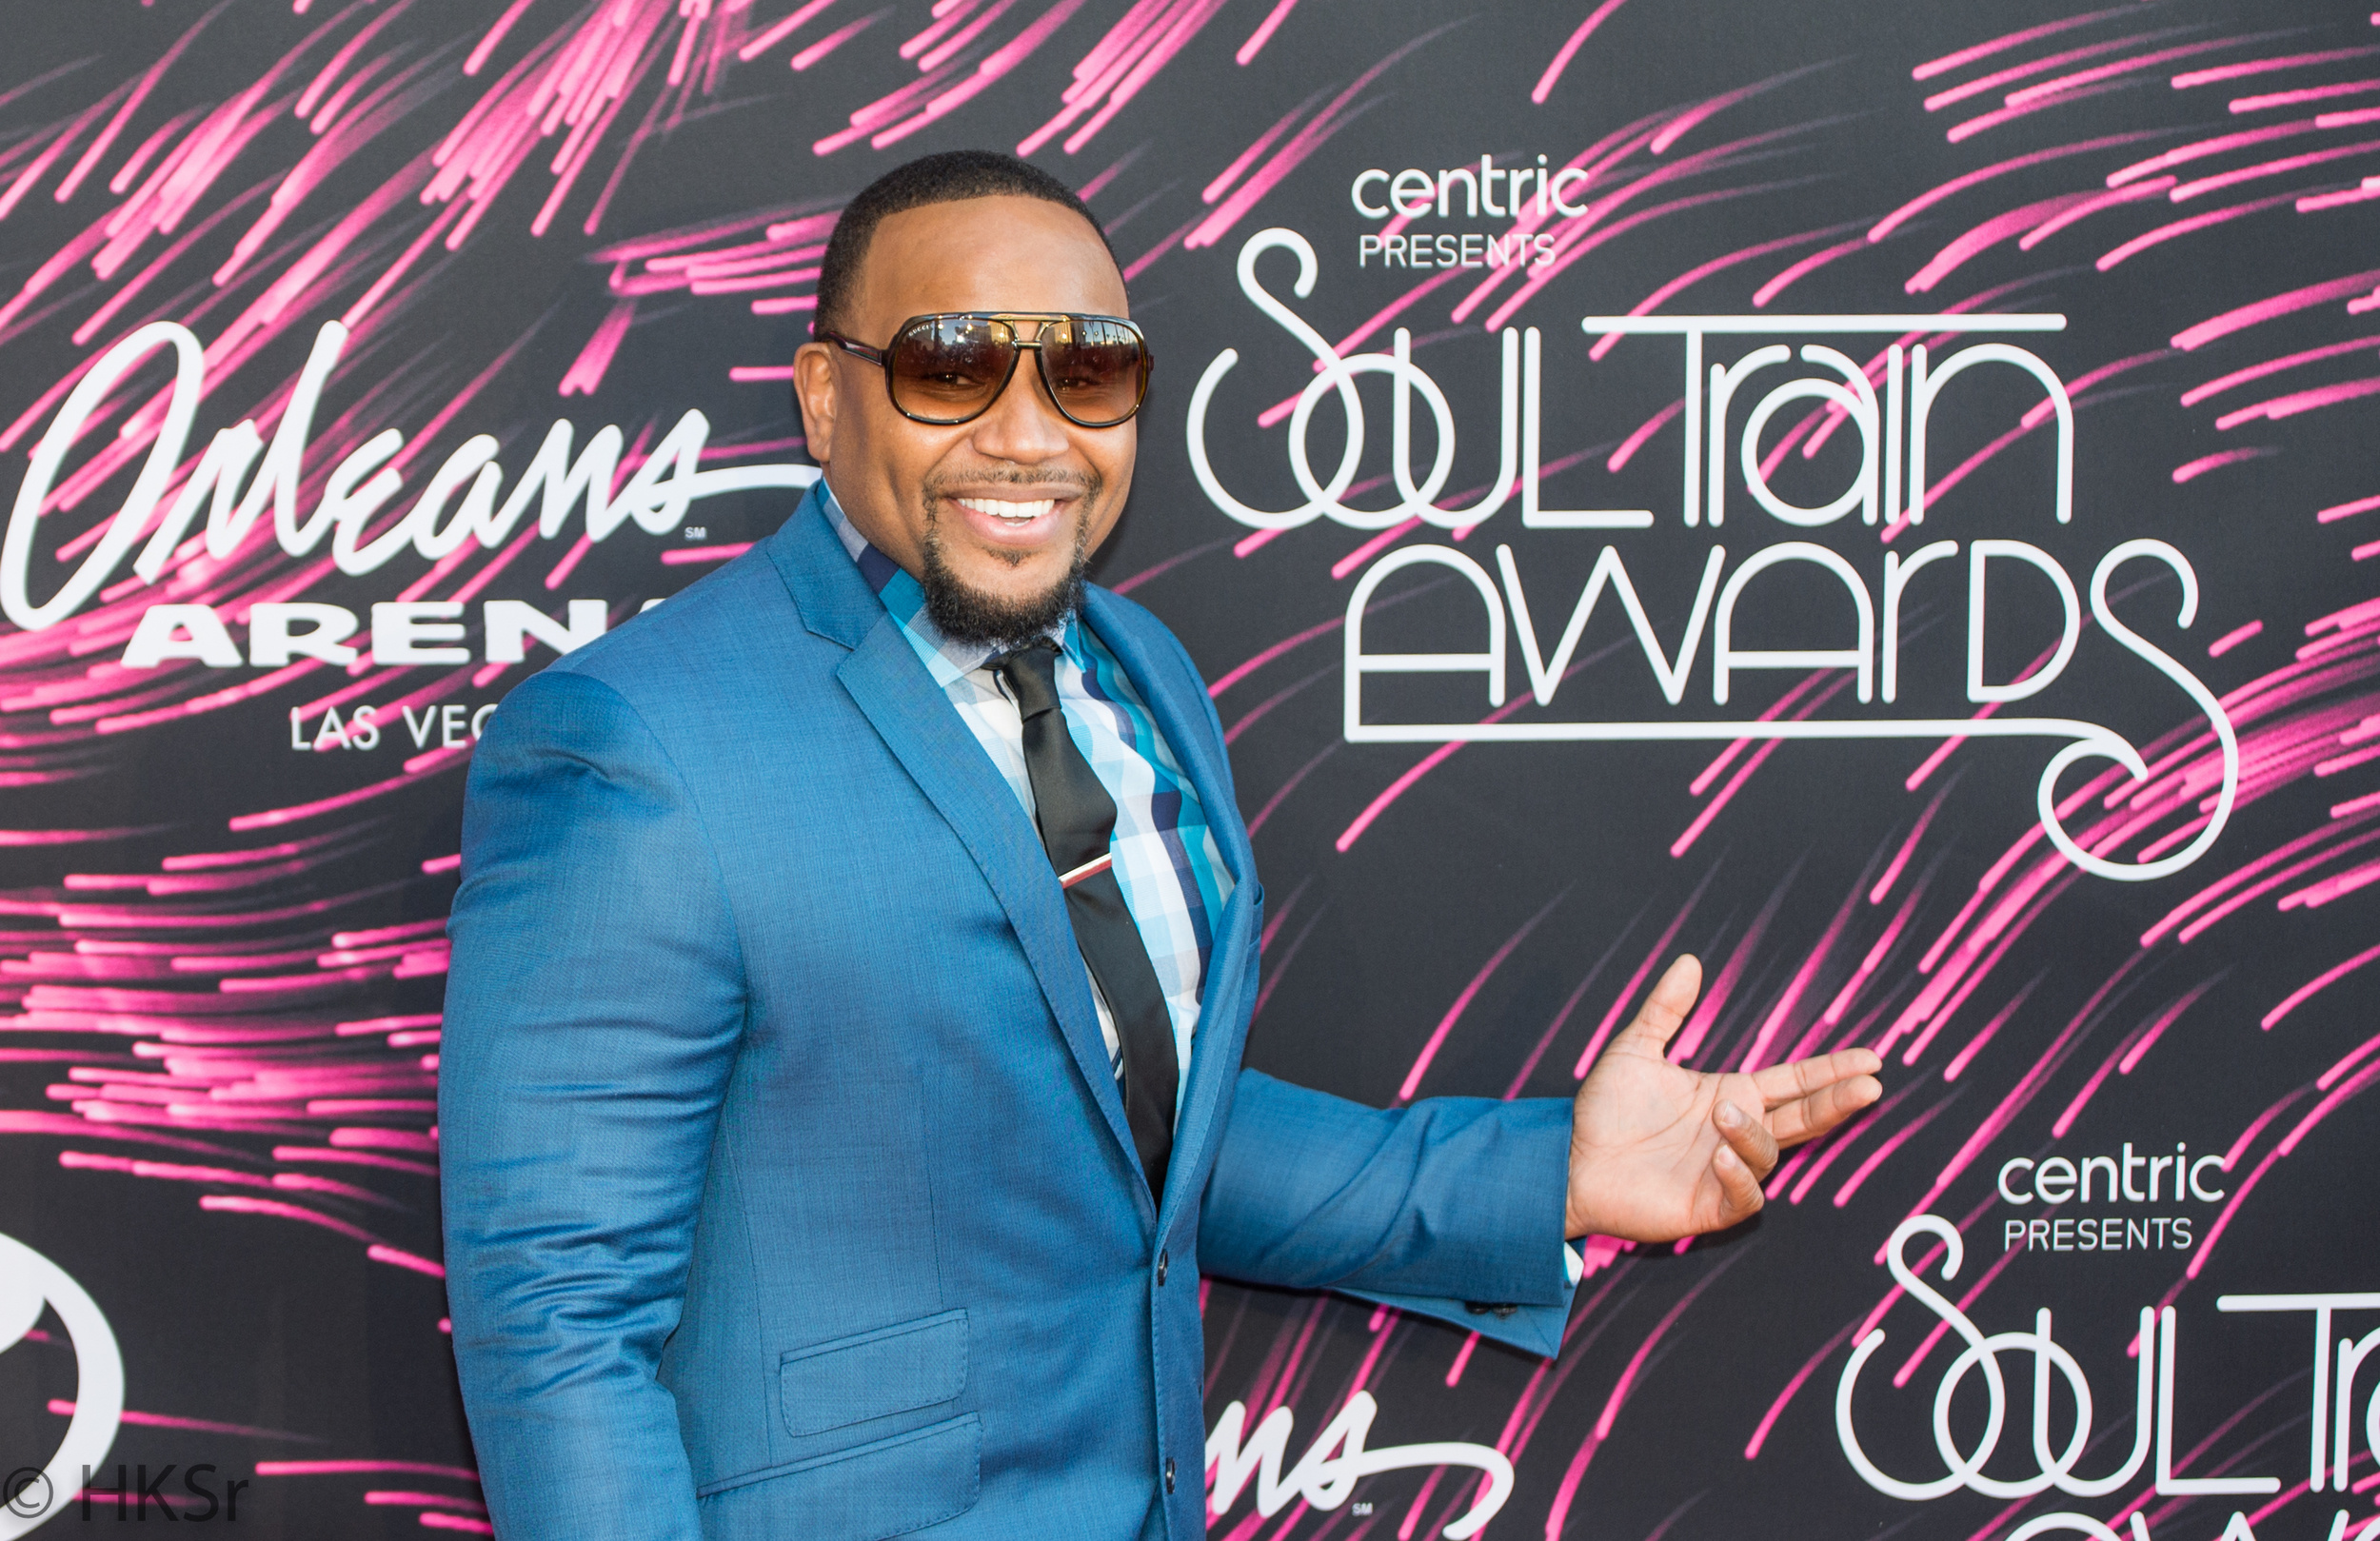 Avant was one of the performers for the SoulTrain Awards